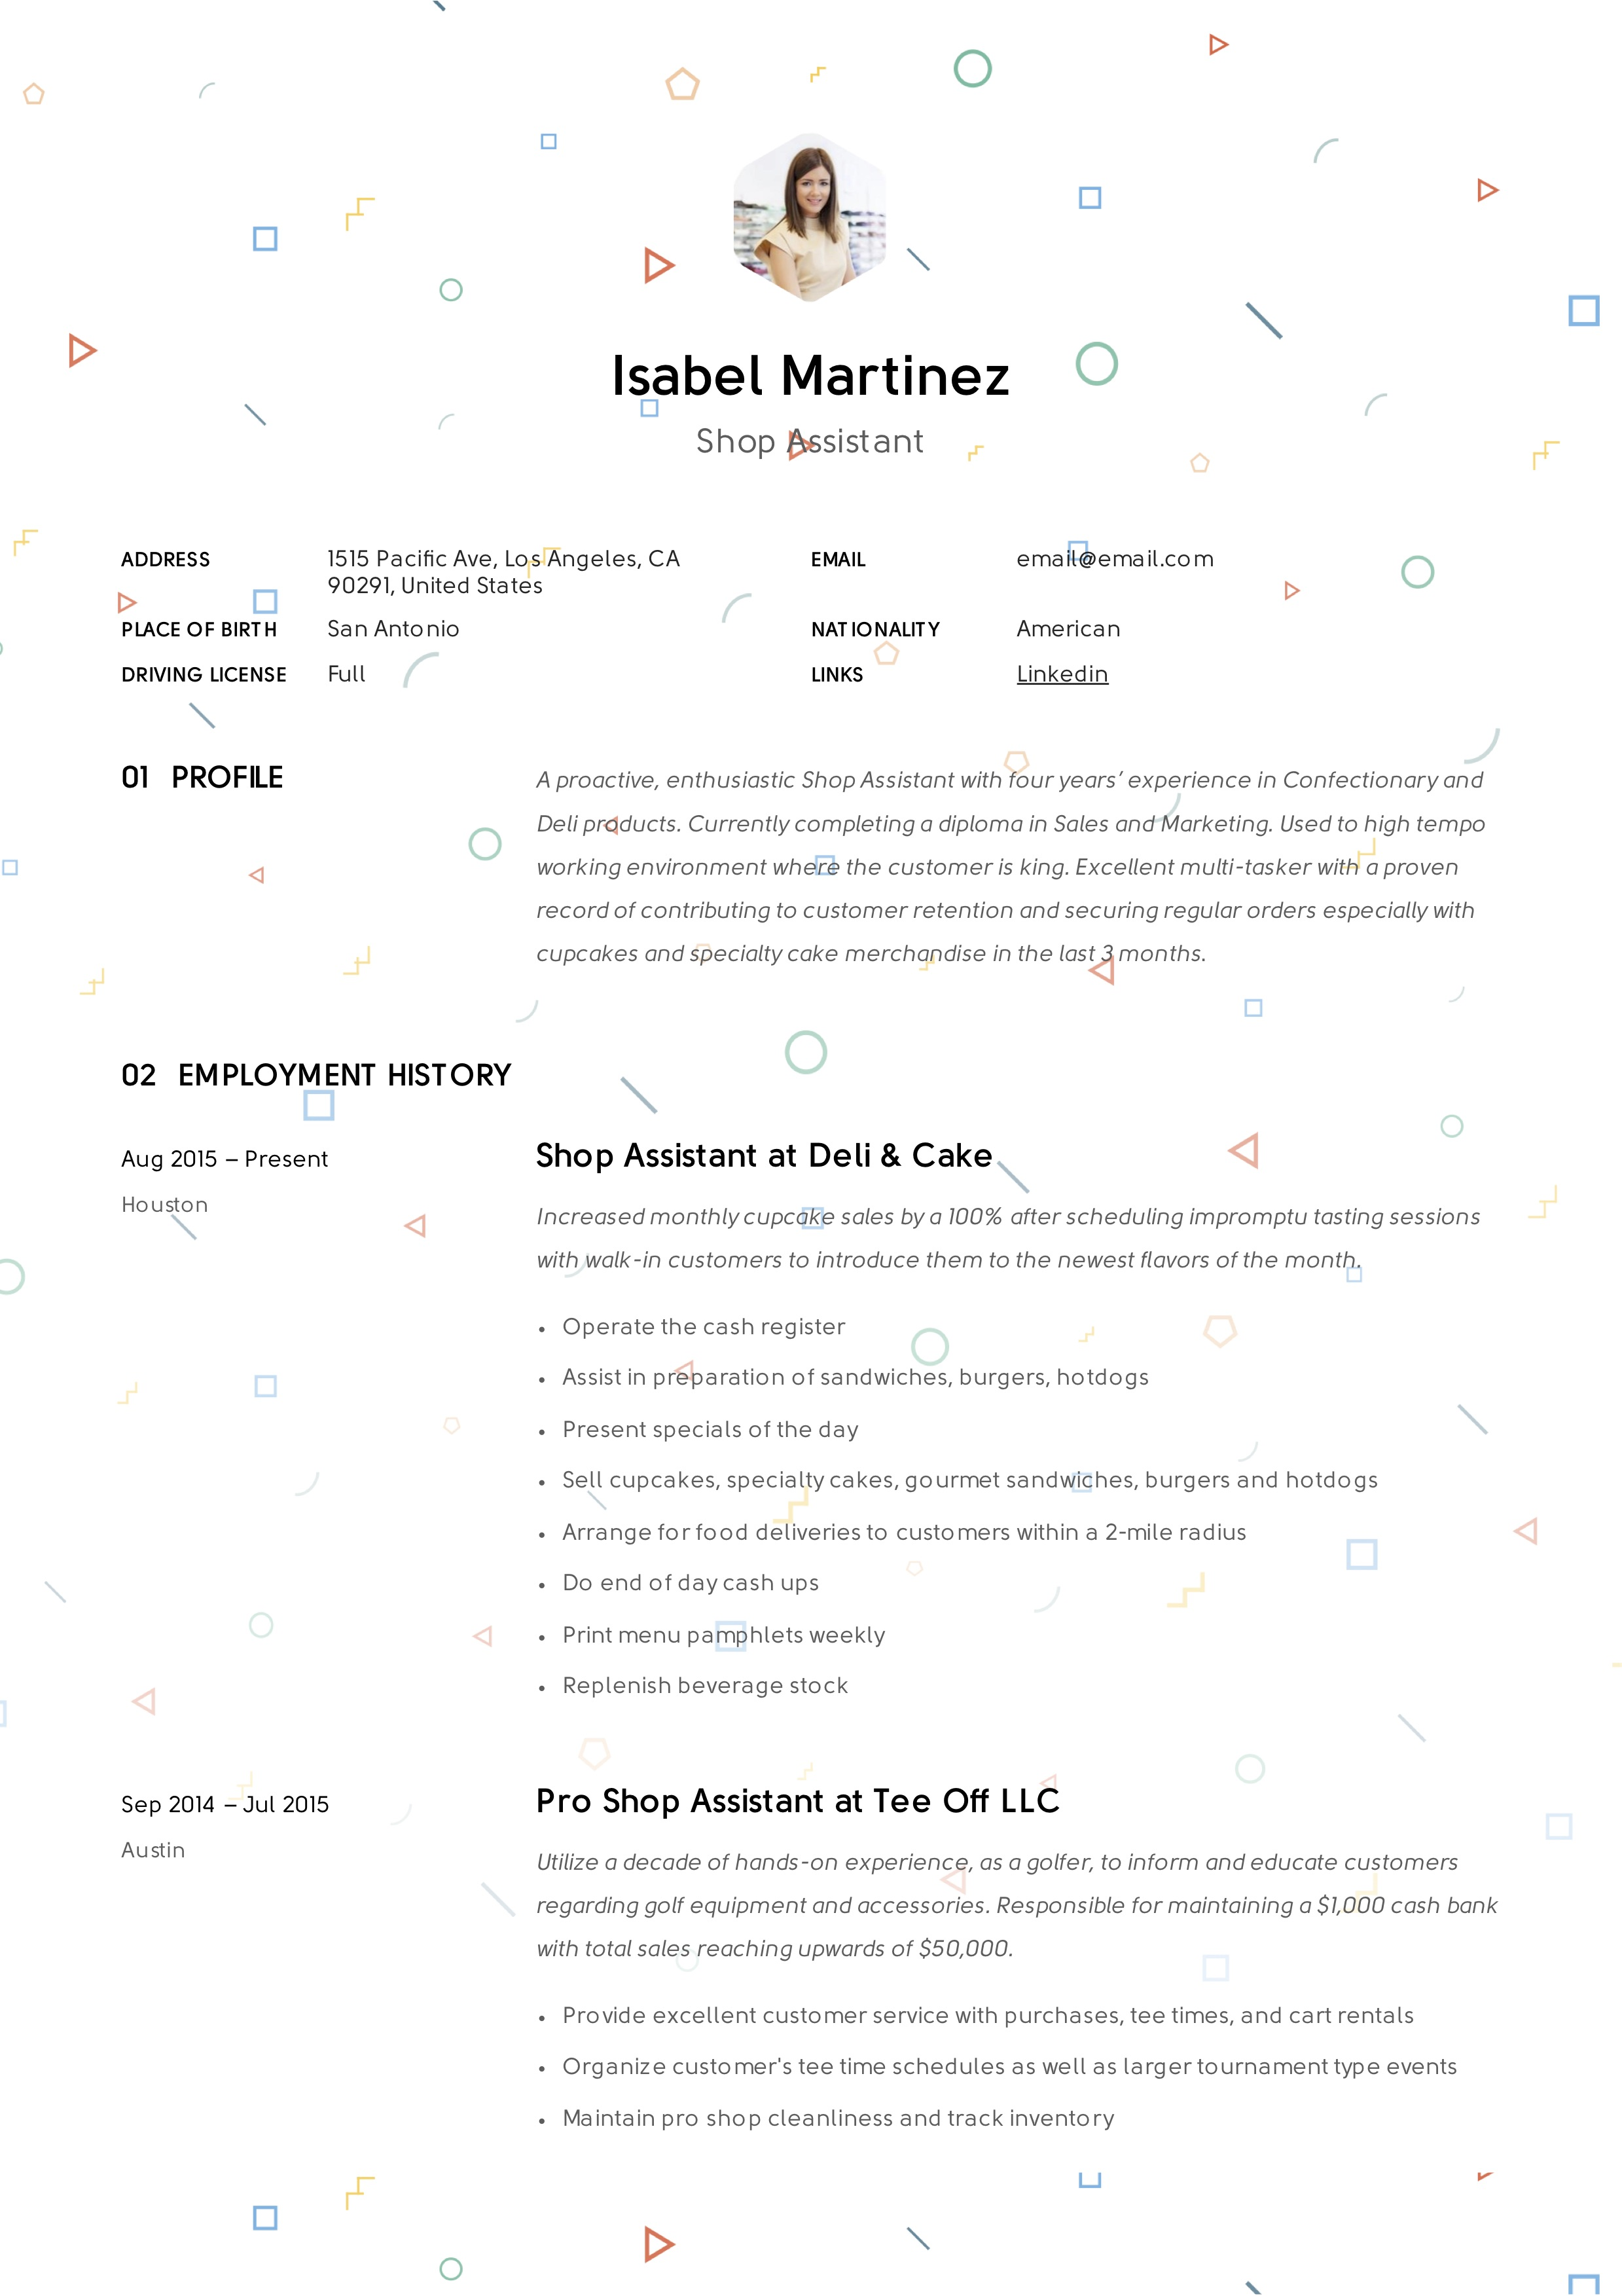 Create Resume for Shop Assistants